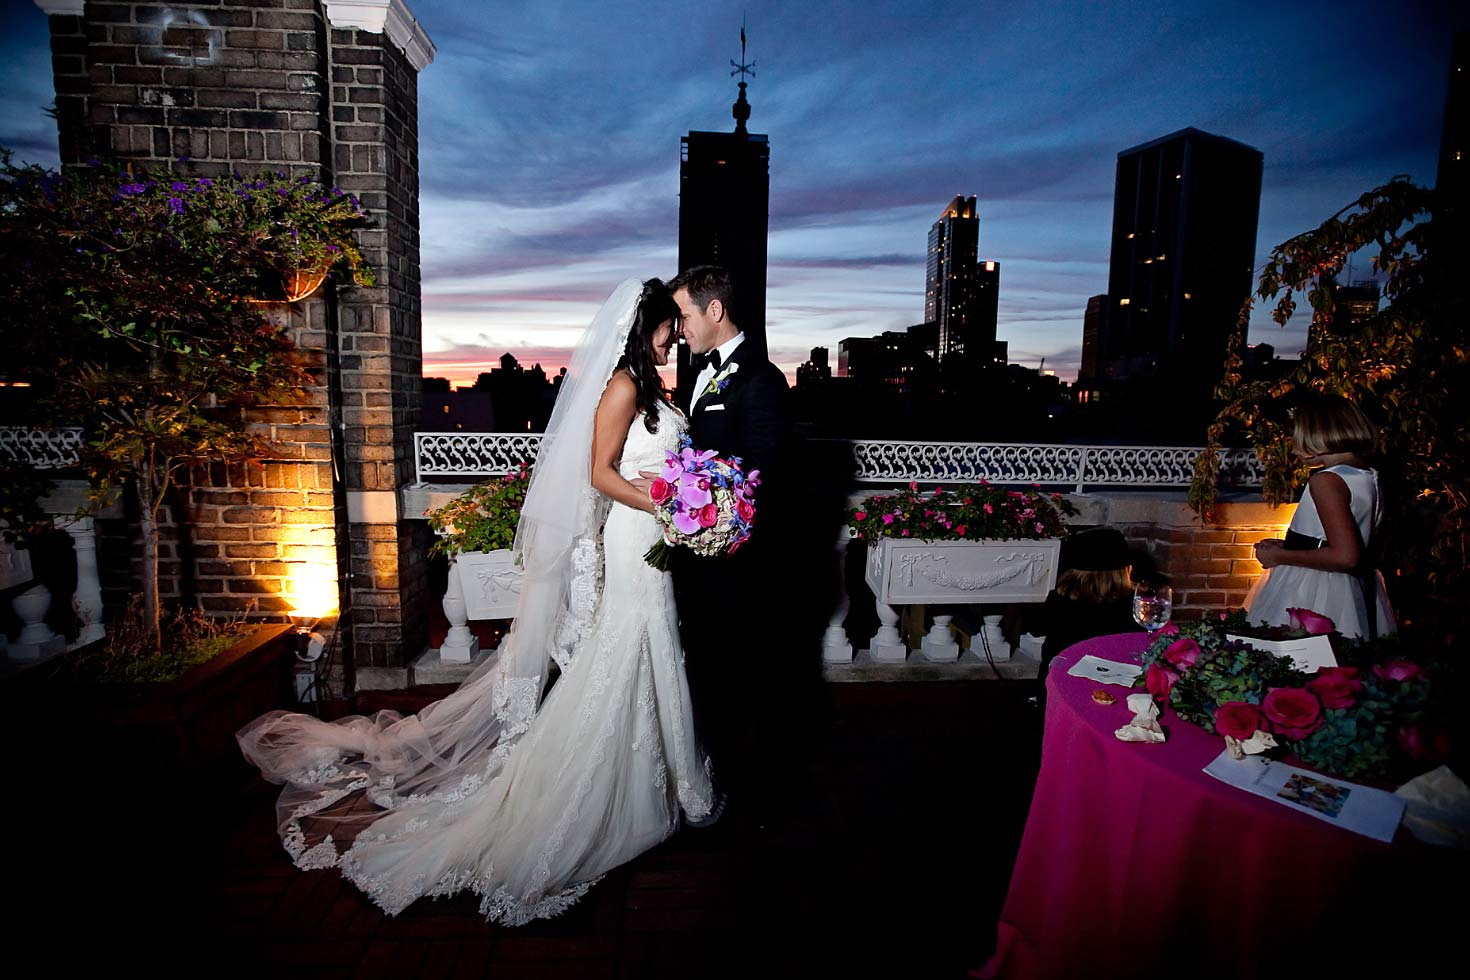 NYC Wedding Venue with Rooftop Garden on 5th Avenue ...